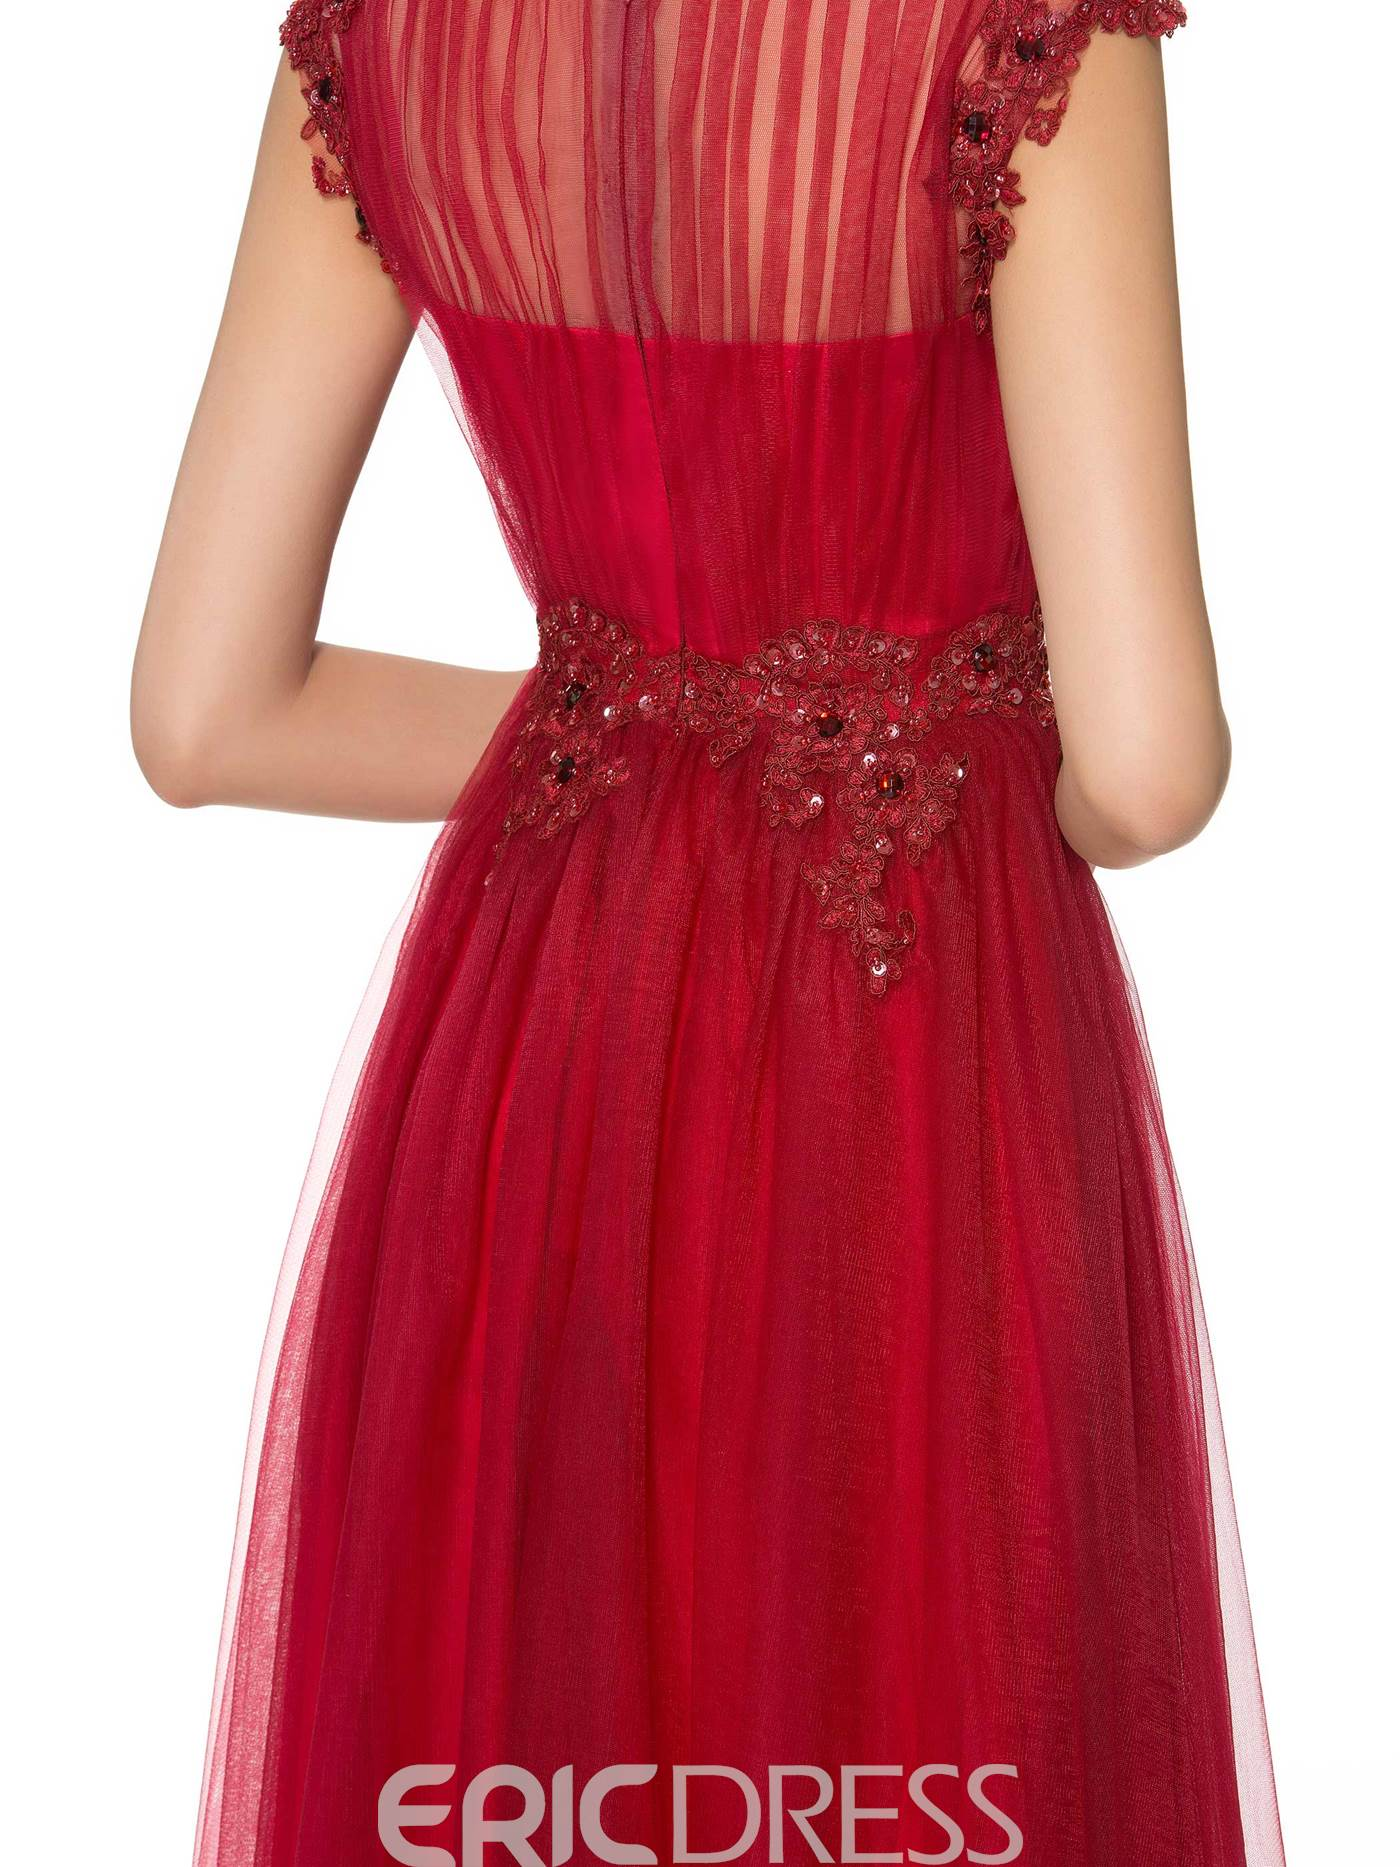 Ericdress Charming Bateau A Line Mother of the Bride Dress